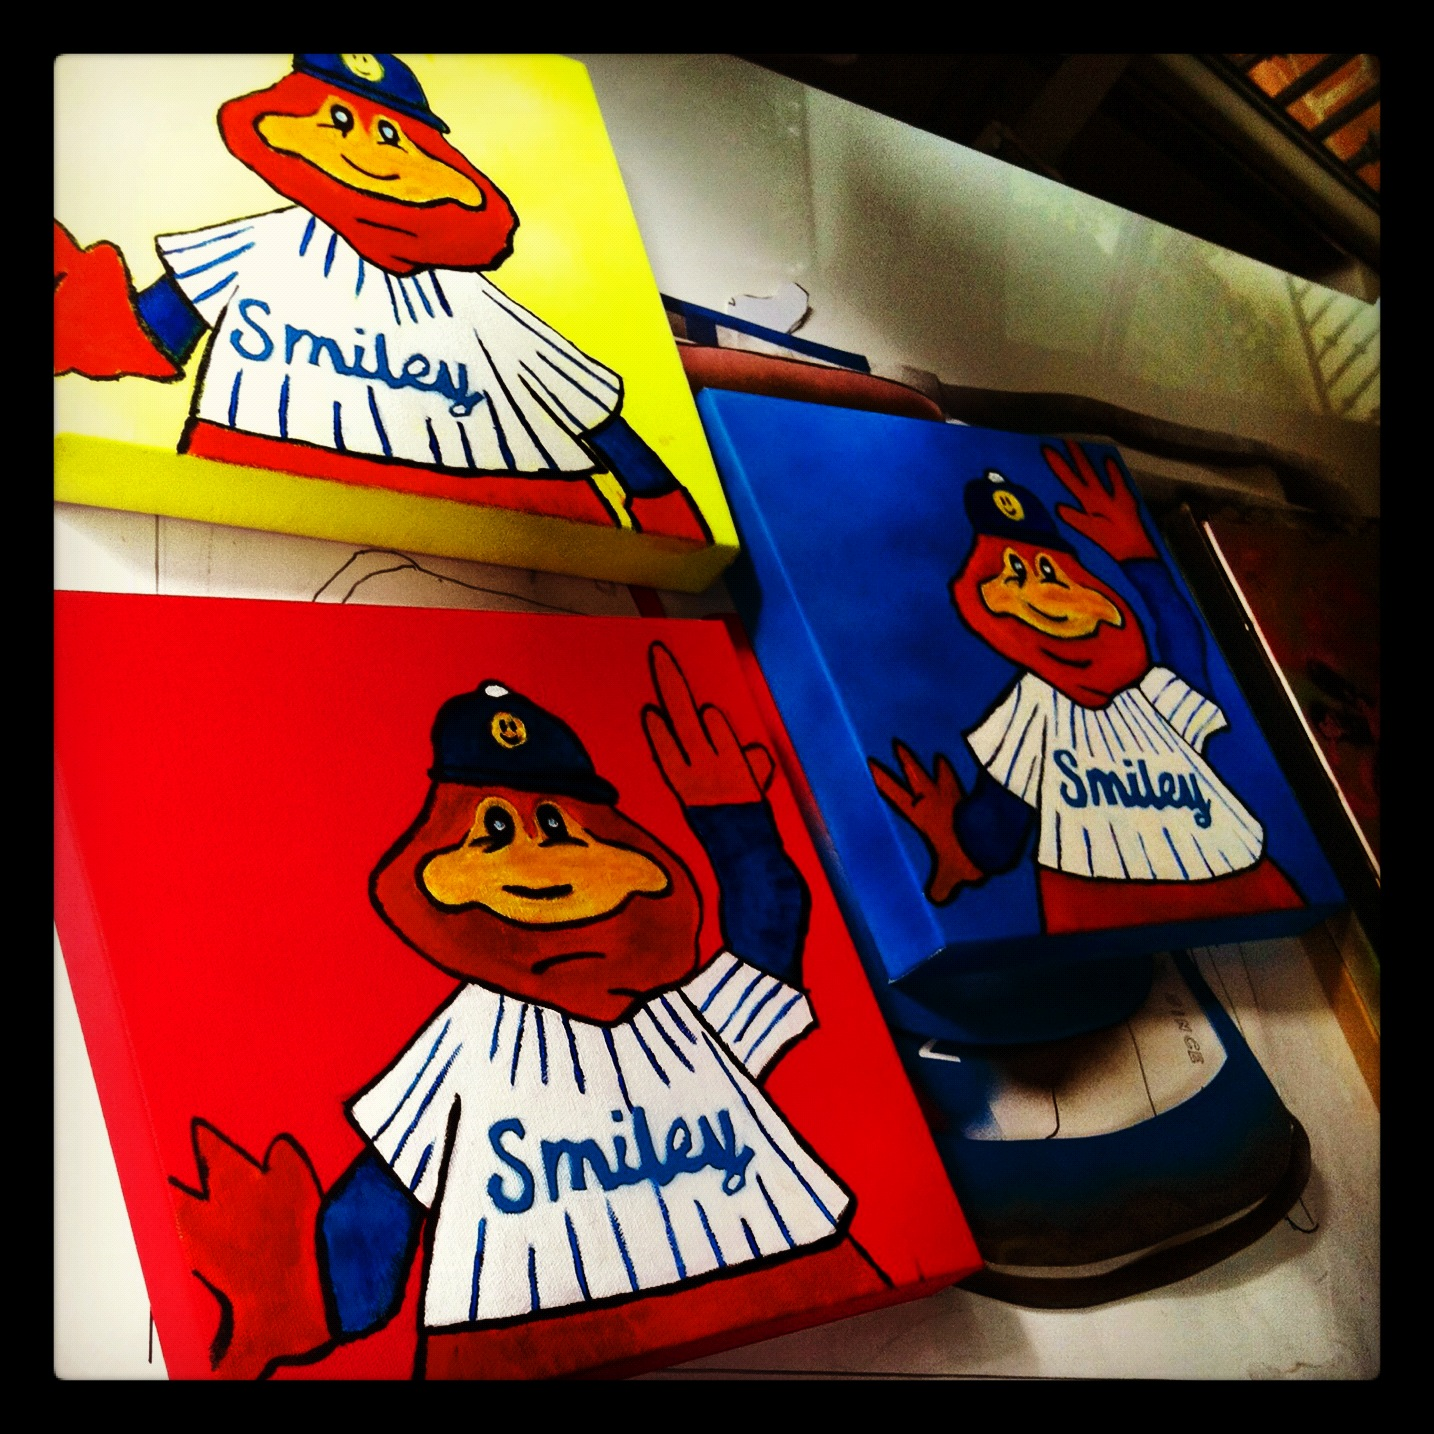 Expos Youppi series 1-3 by Matt Smiley